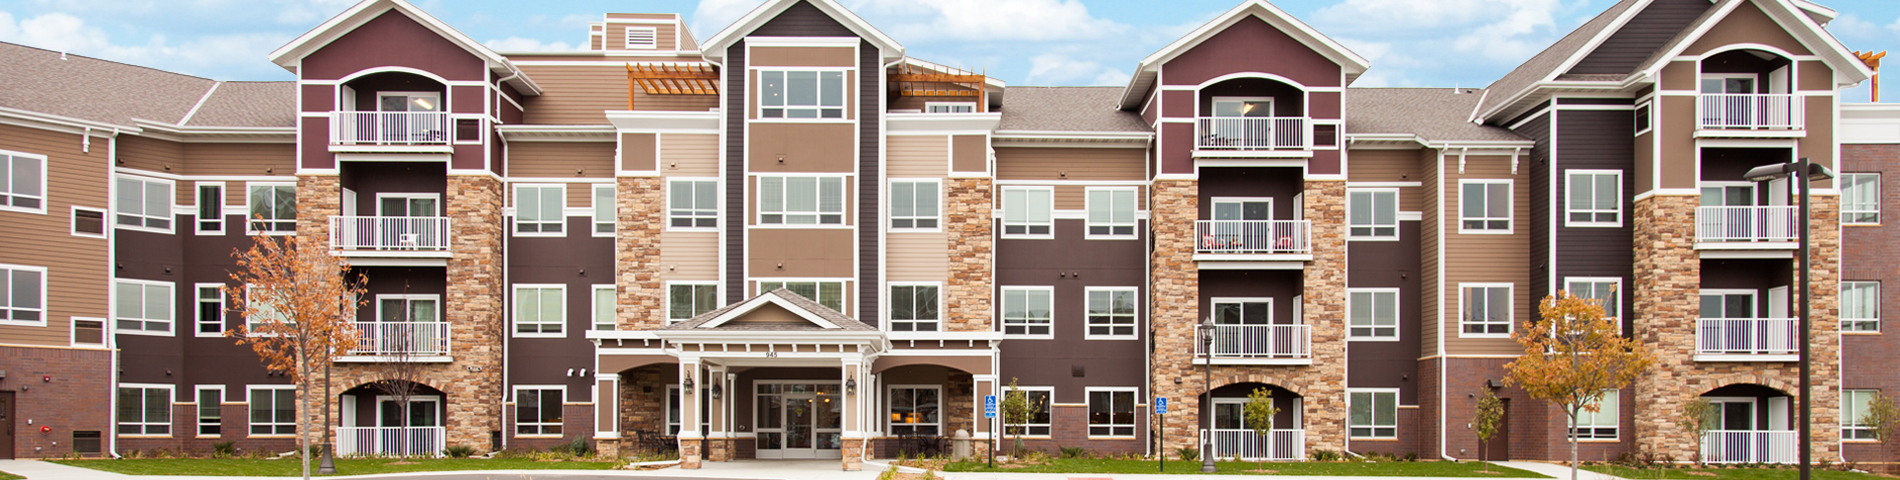 News U0026 Events | Senior Living Community |St. Paul, Minneapolis, Twin  Cities, Minneosta